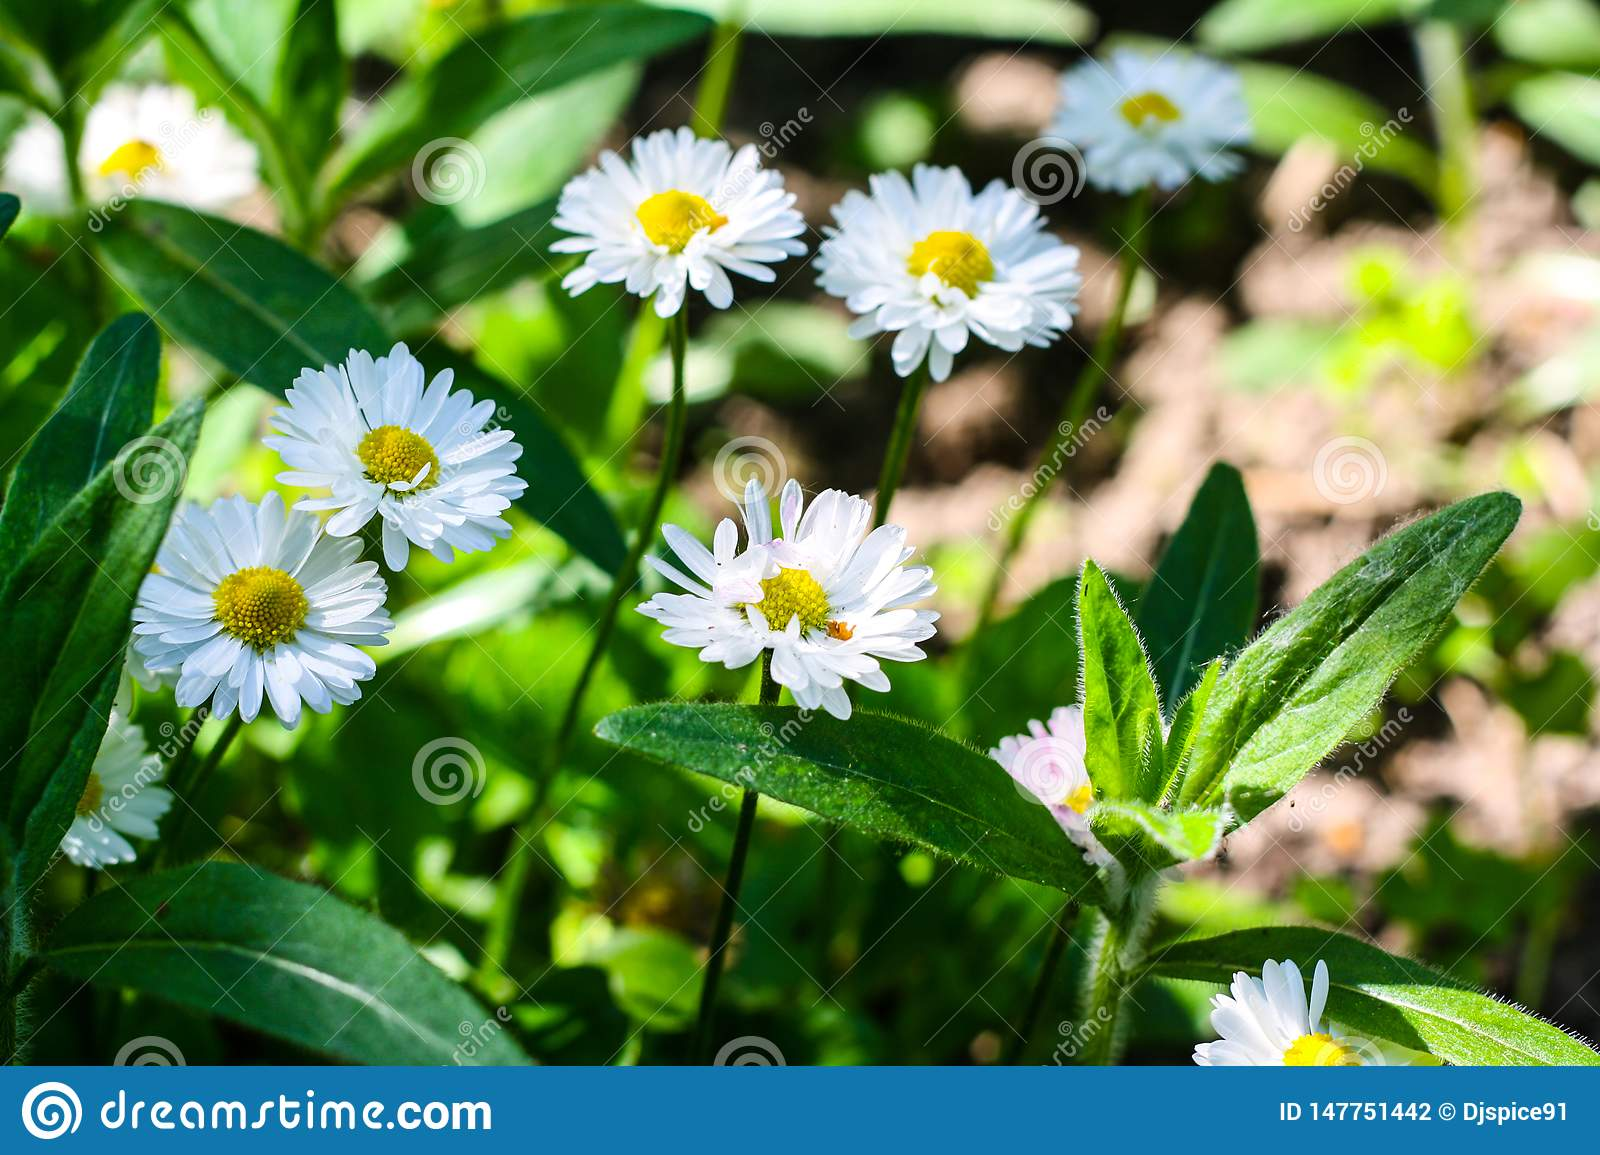 Many white daisies in the sun